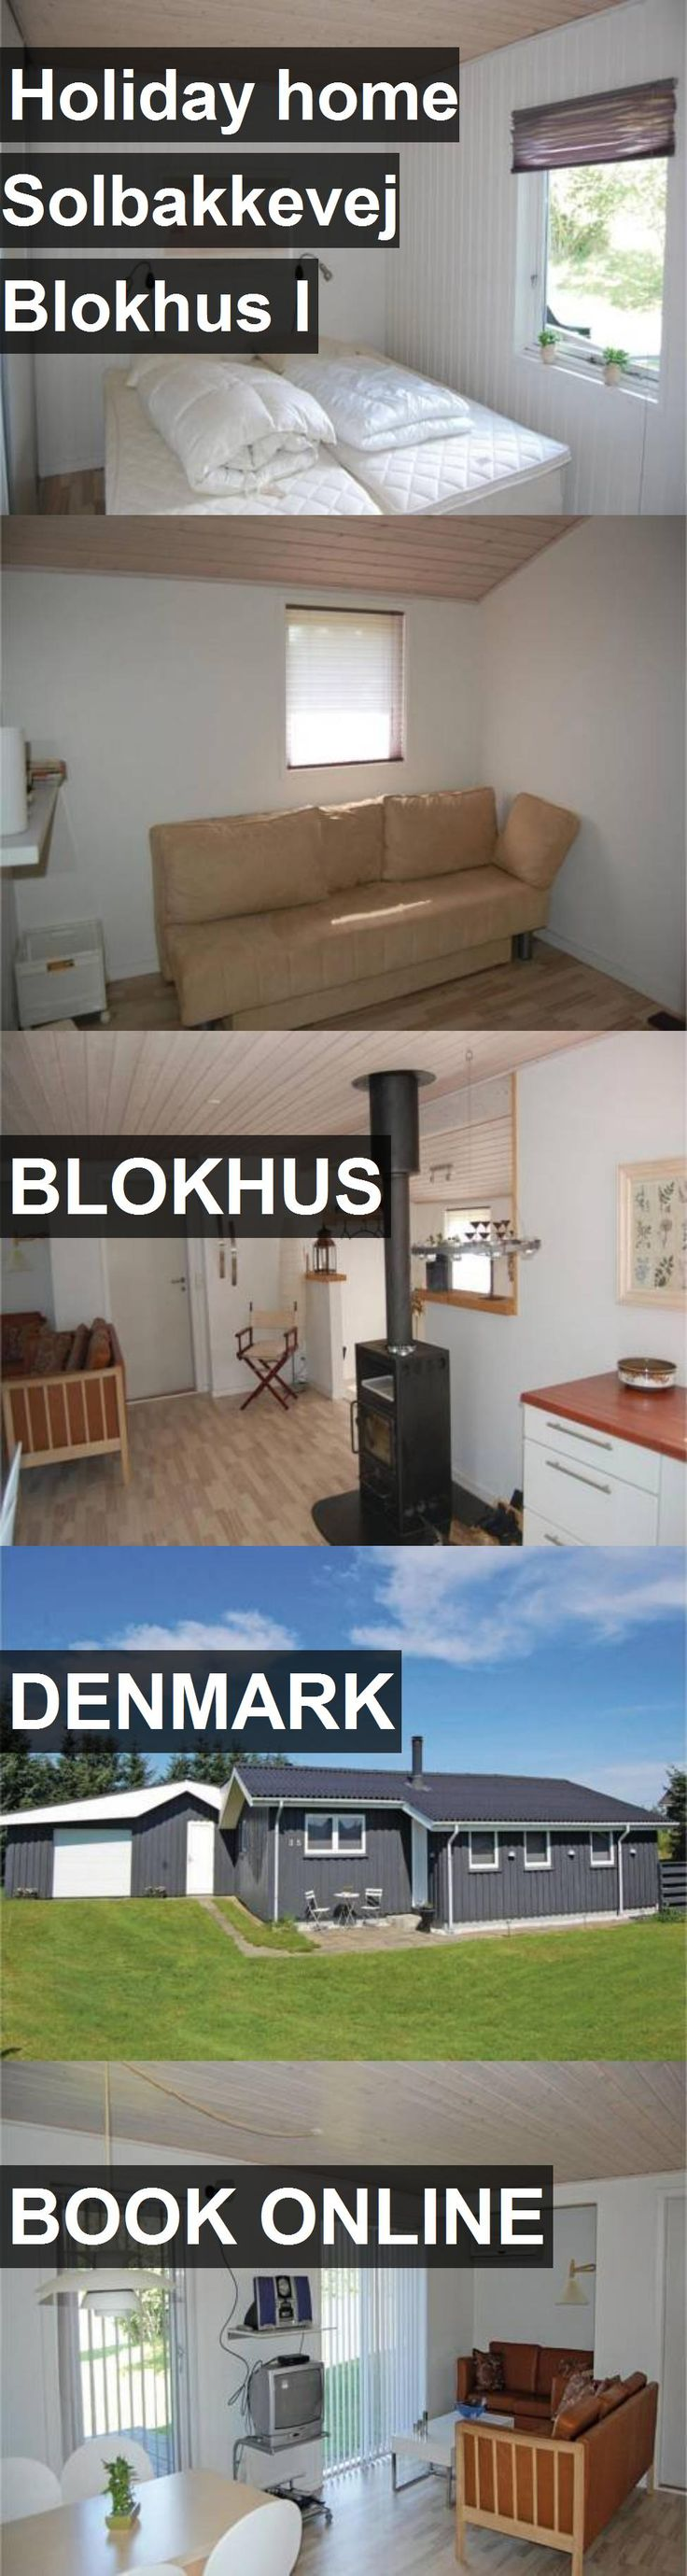 Hotel Holiday home Solbakkevej Blokhus I in Blokhus, Denmark. For more information, photos, reviews and best prices please follow the link. #Denmark #Blokhus #hotel #travel #vacation